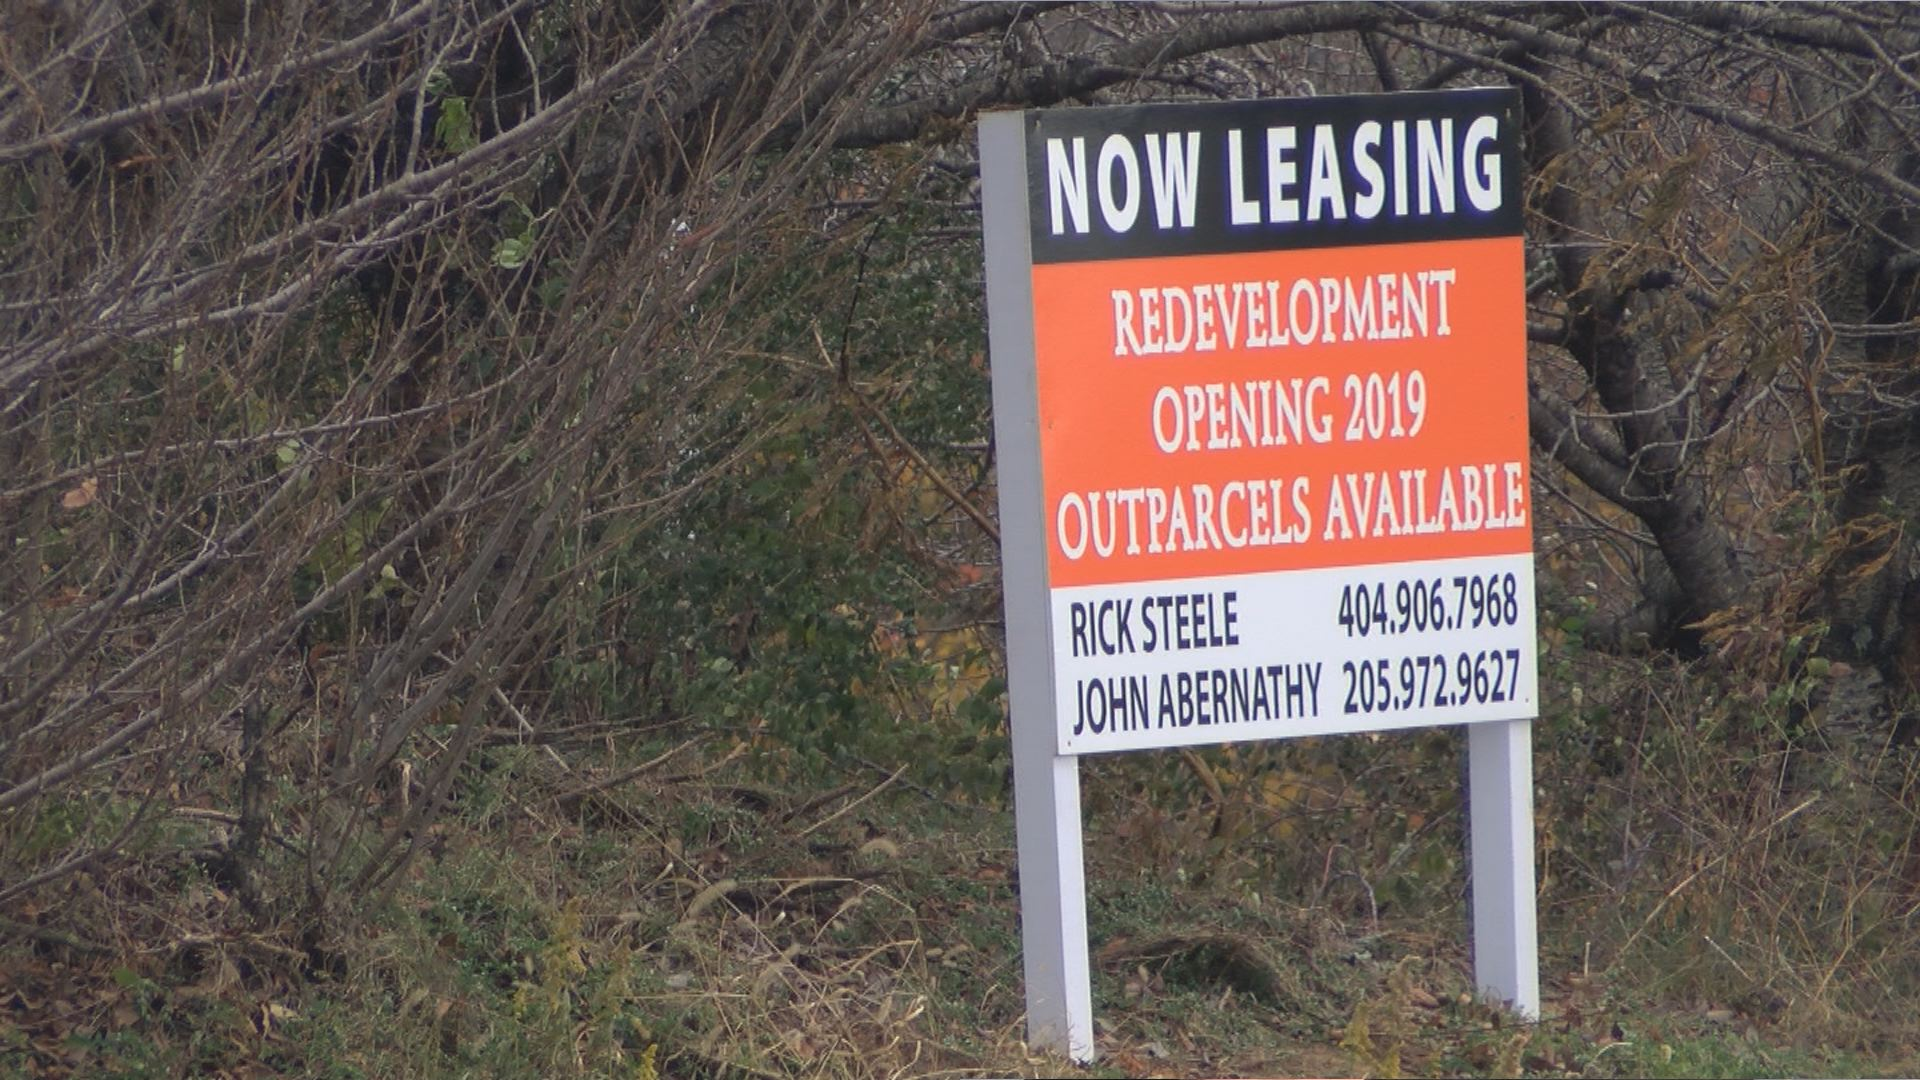 Redevelopment Opening 2019' sign seen outside old Johnson